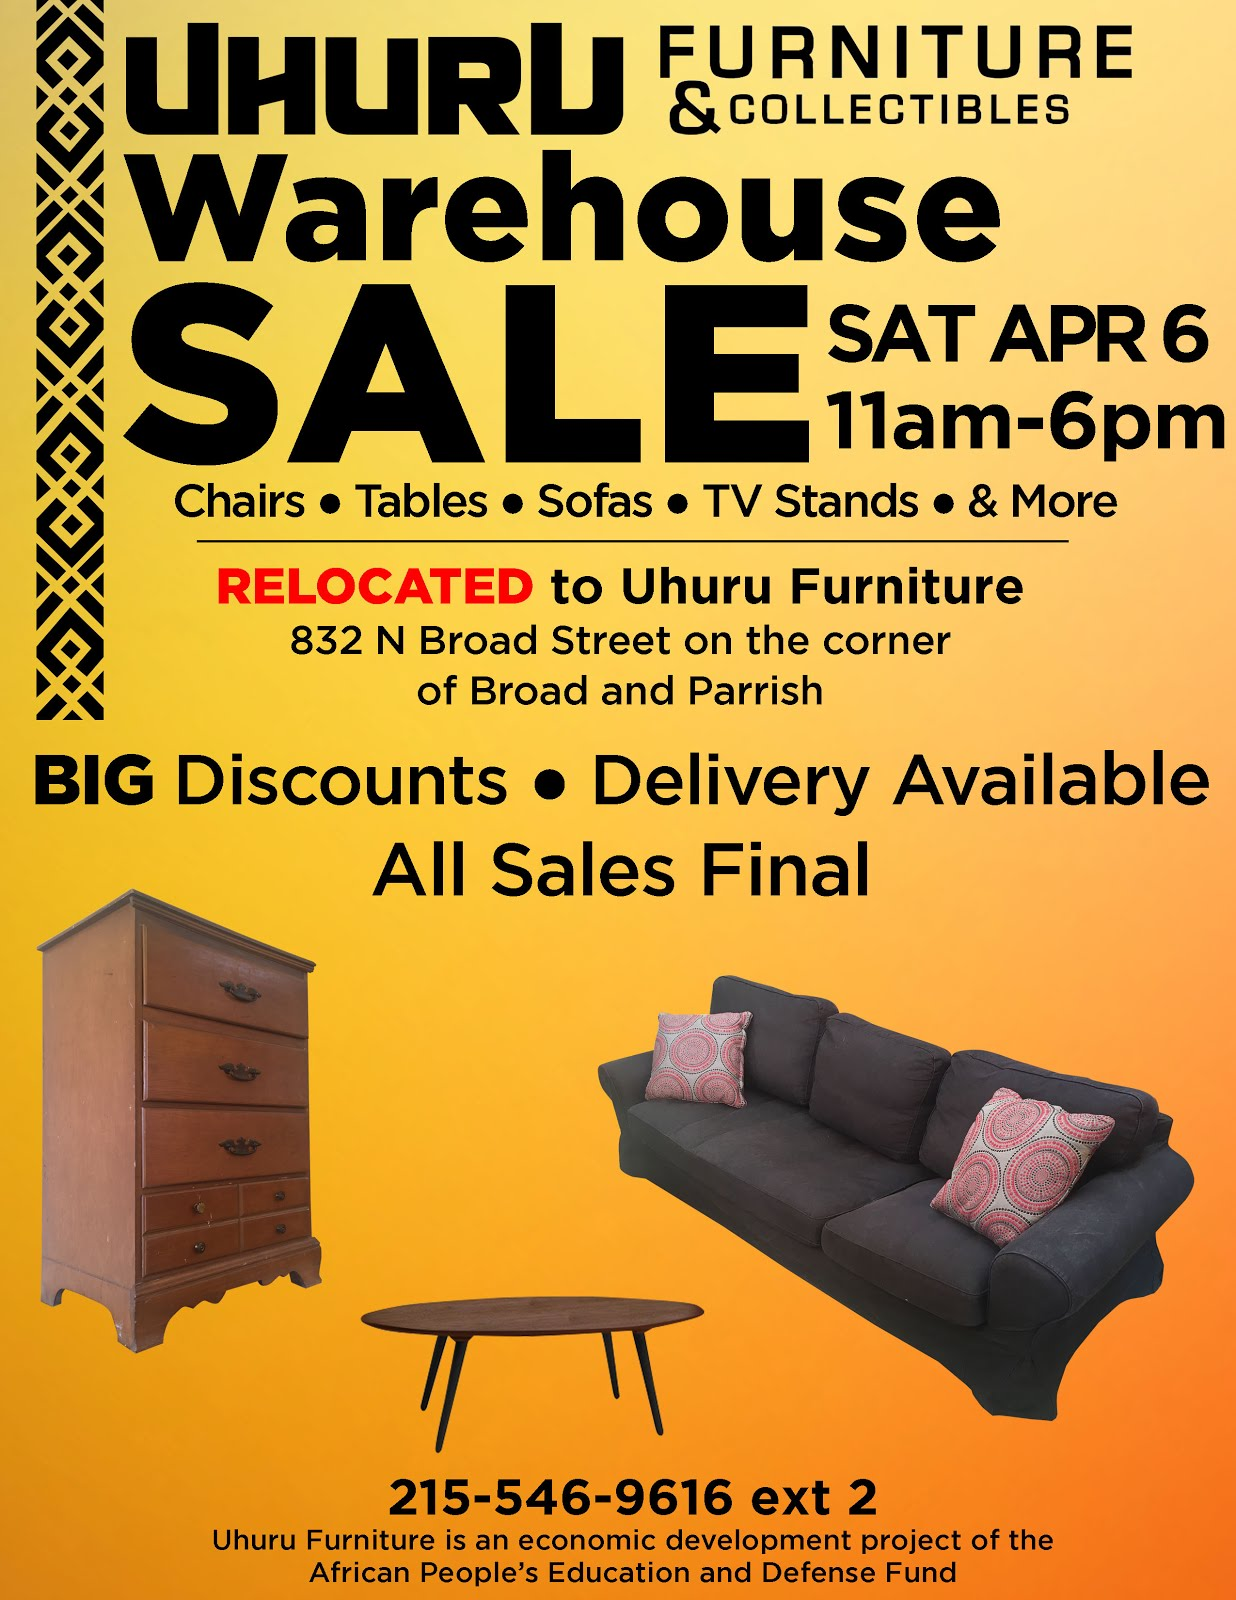 Next Warehouse Sale: